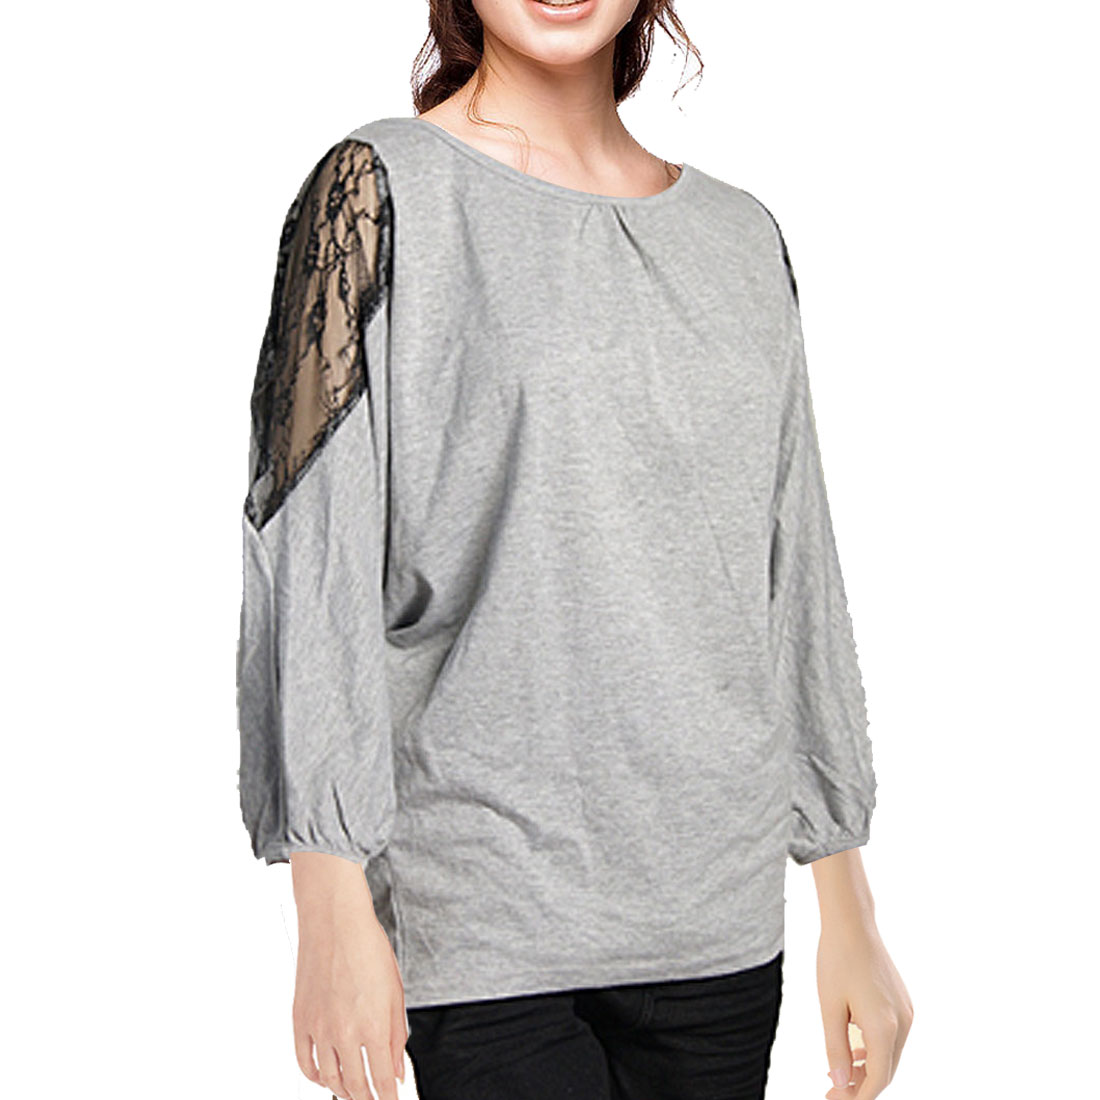 Ladies Boat Neck Off Single Shoulder Batwing Sleeves Shirt S